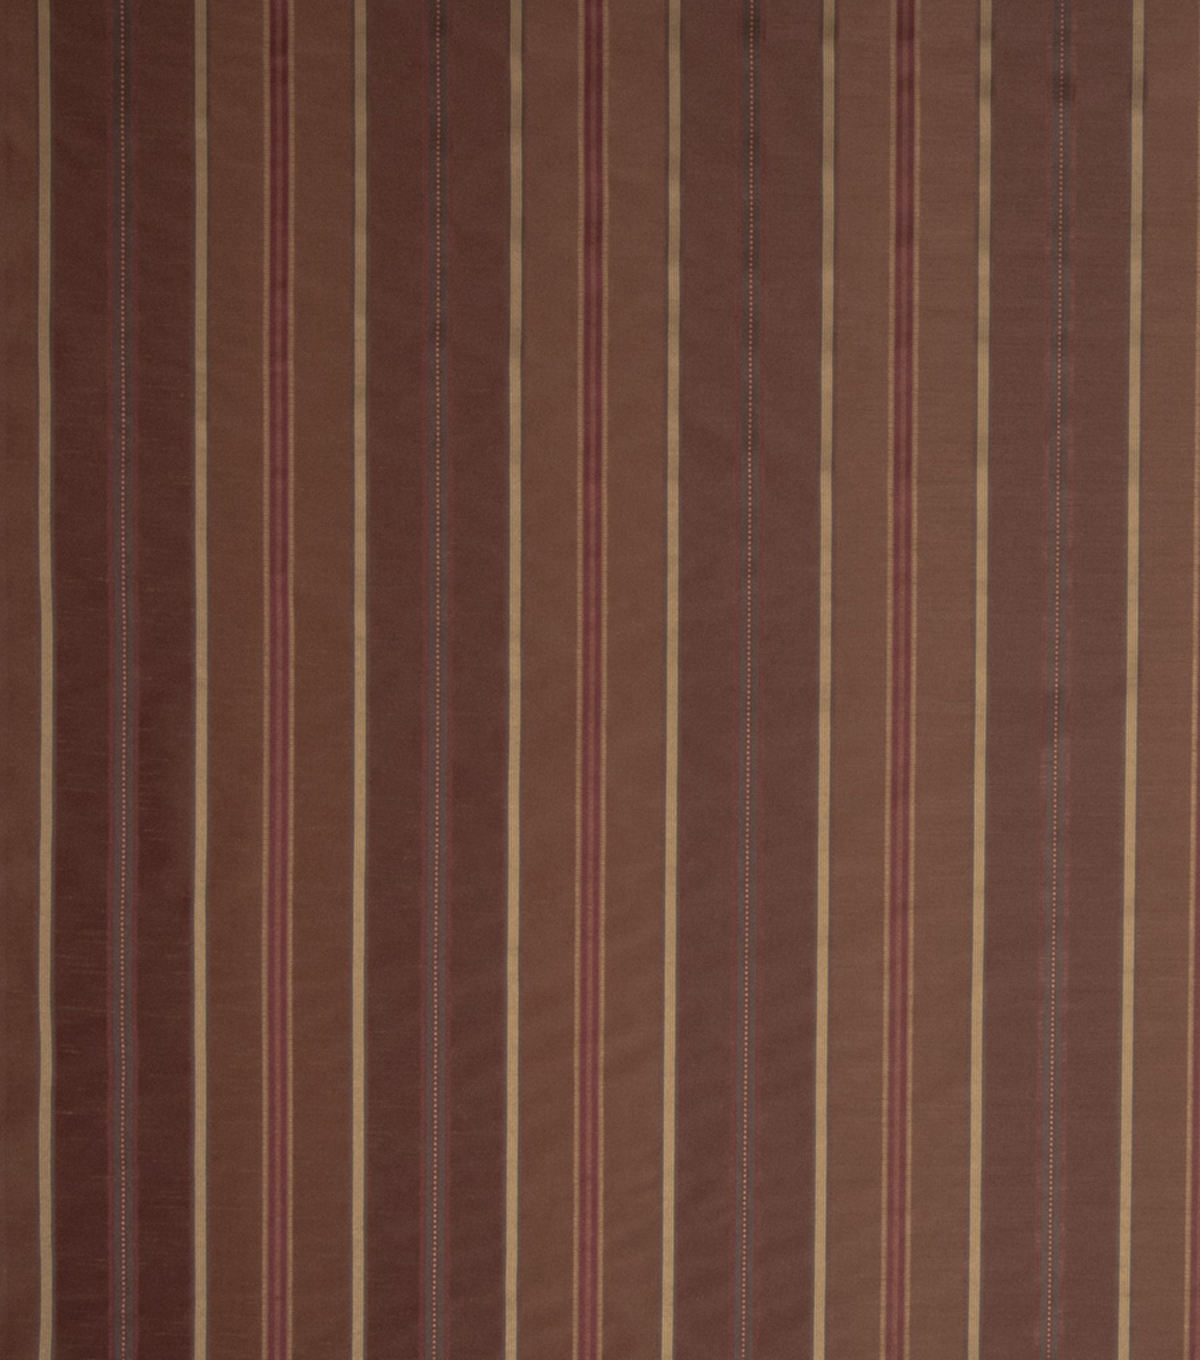 Home Decor 8\u0022x8\u0022 Fabric Swatch-SMC Designs Asiago / Port